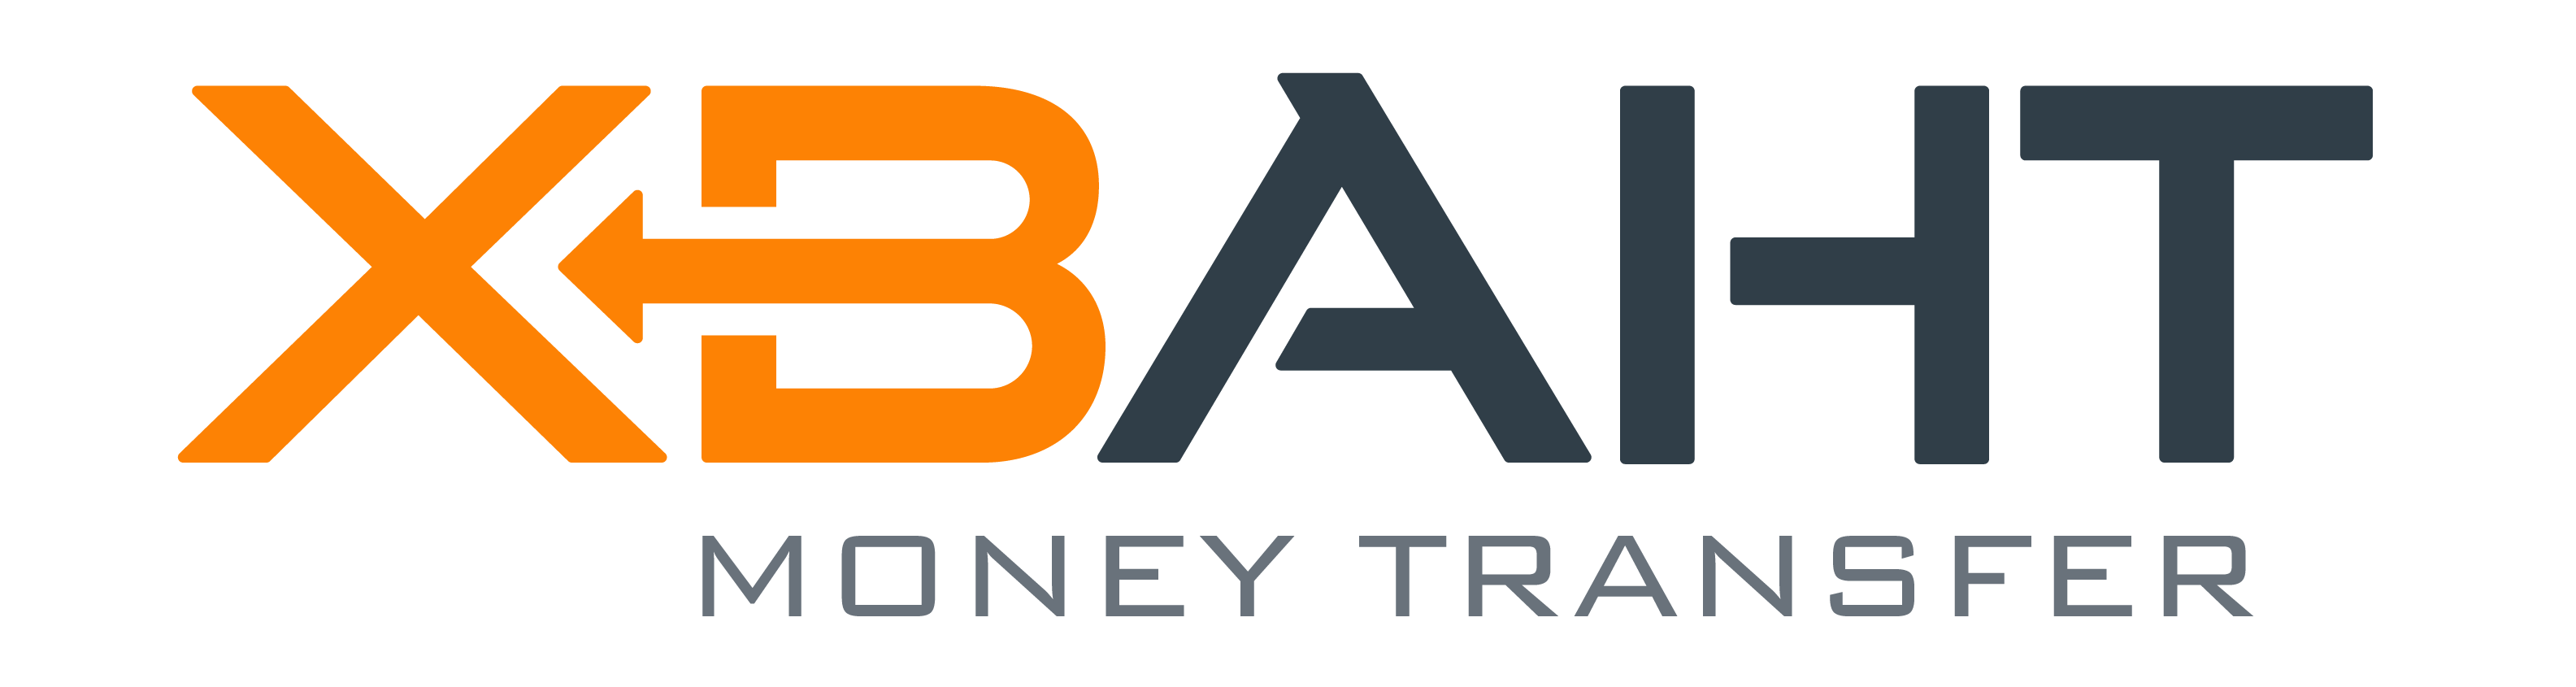 Xbaht Money Transfer